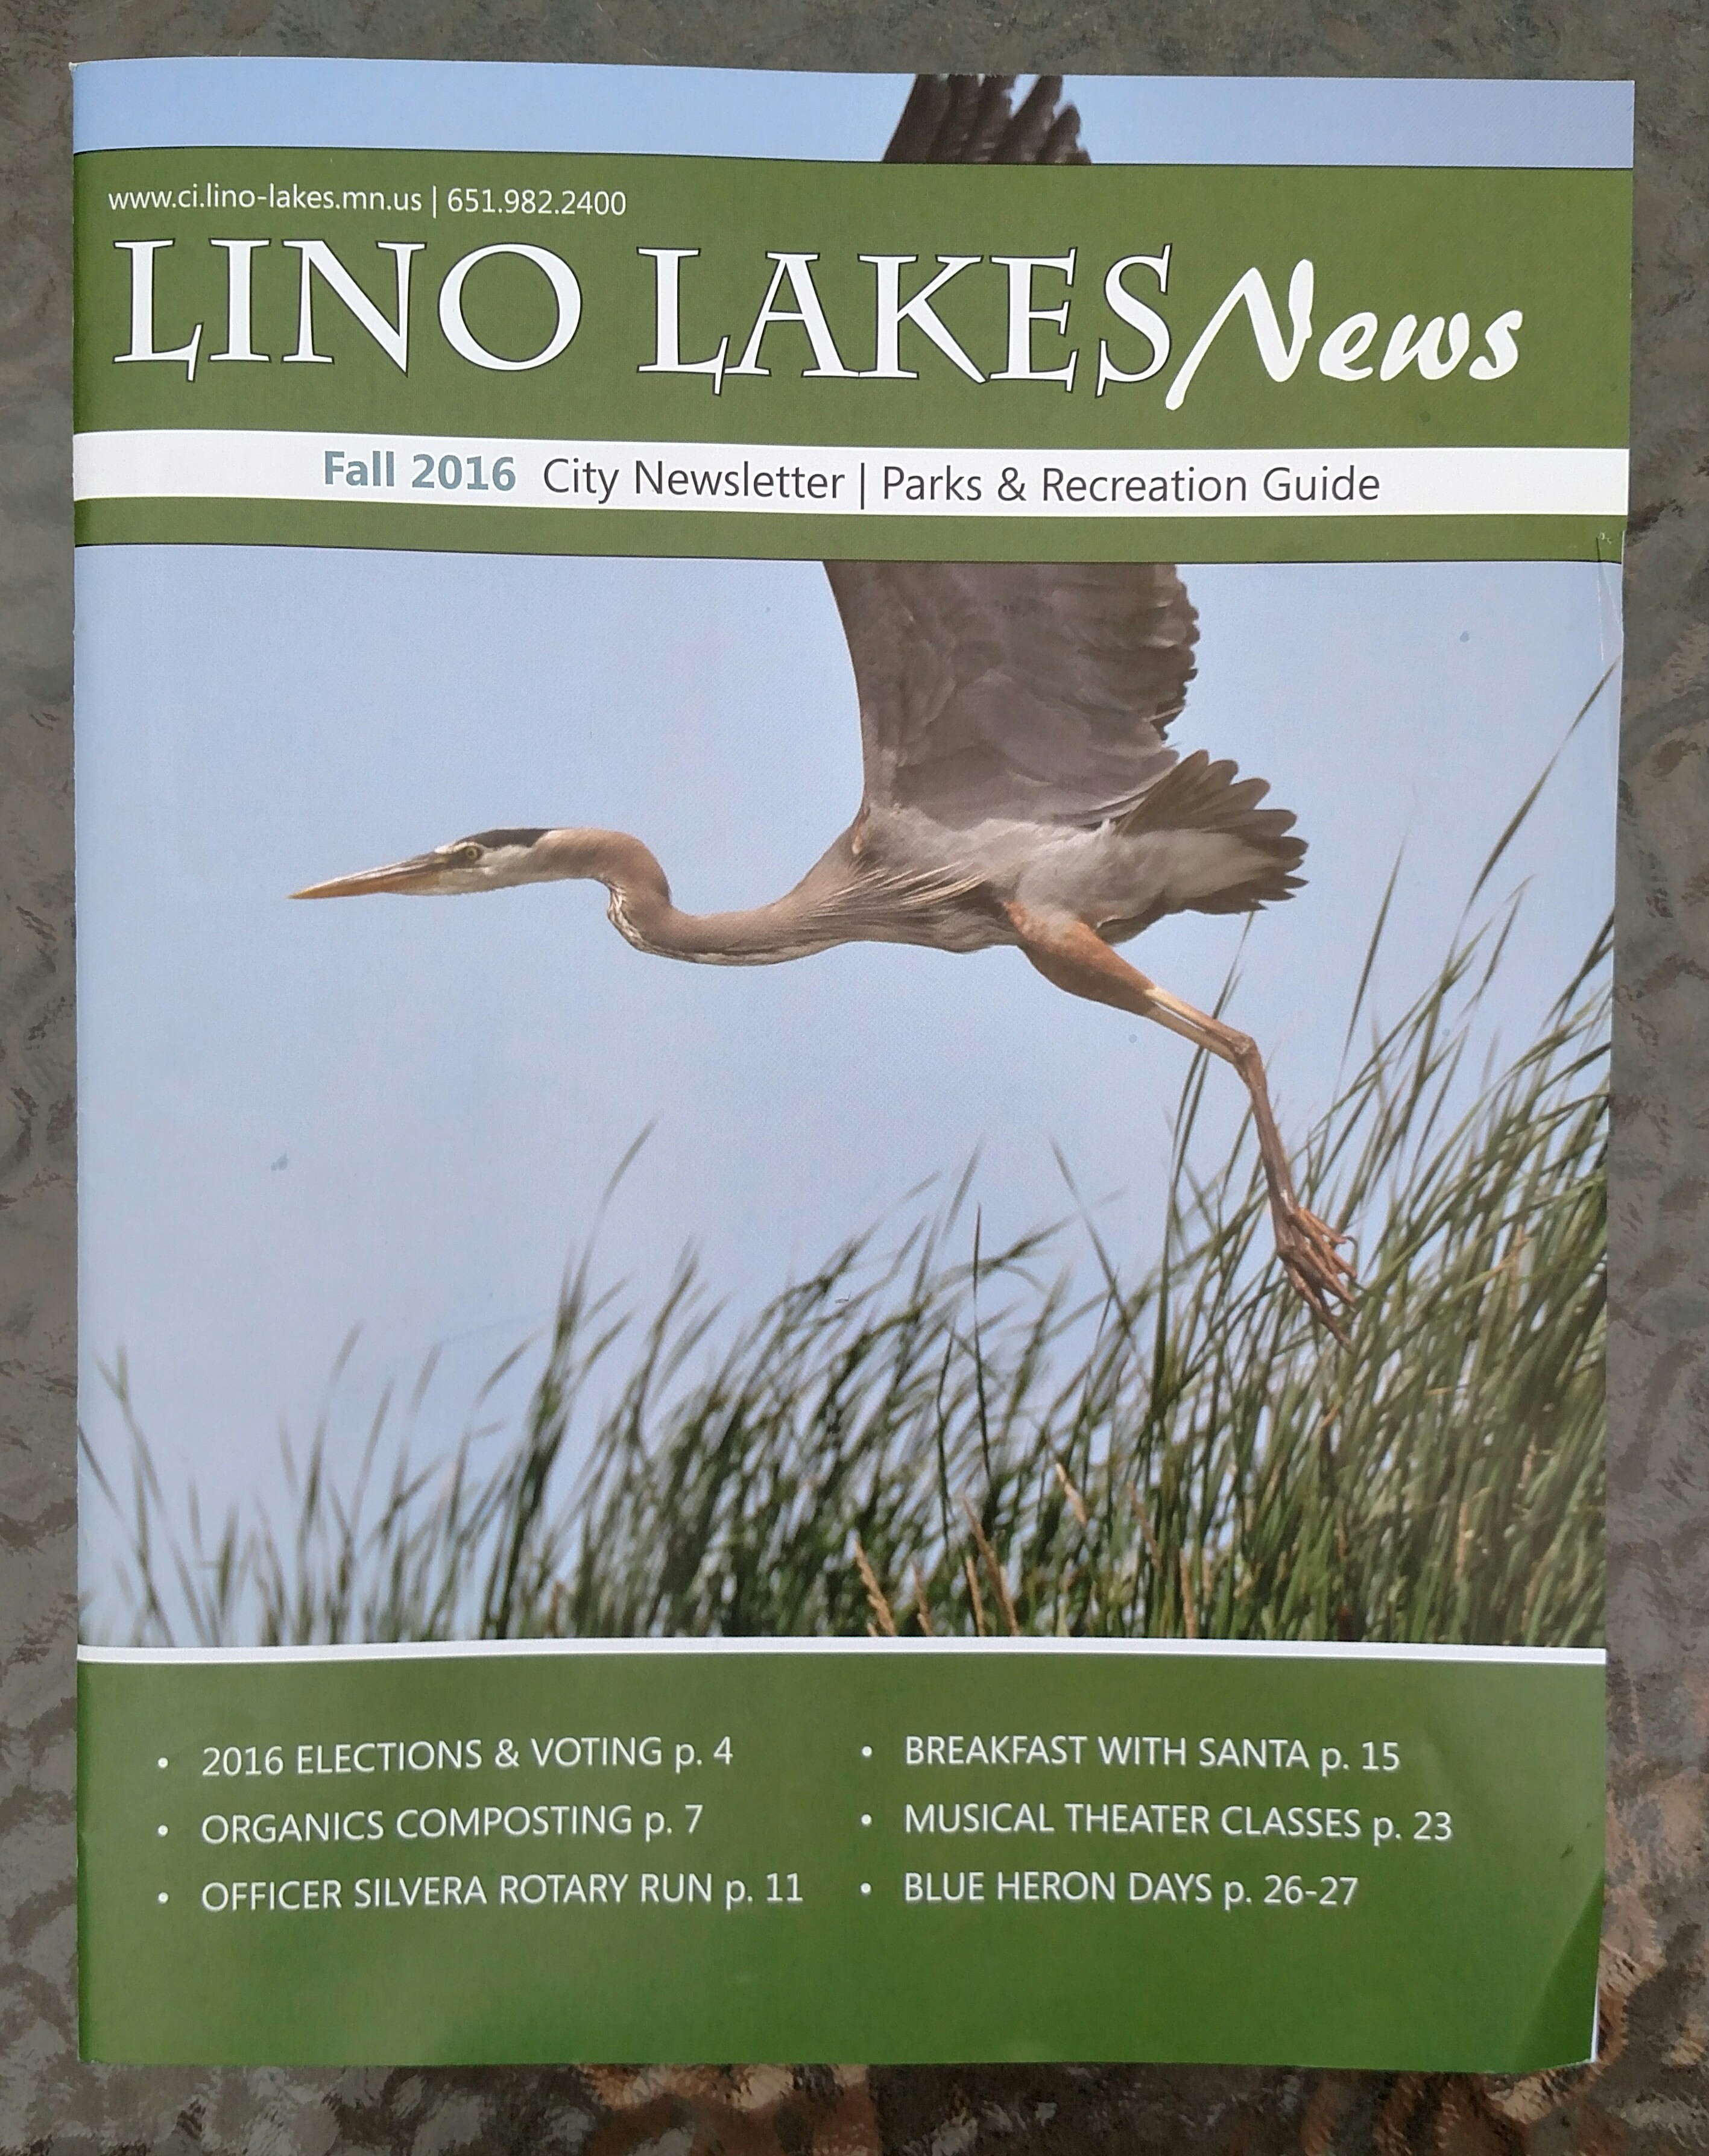 Lino Lakes News Fall 2016 – City Newsletter | Parks & Recreation Guide